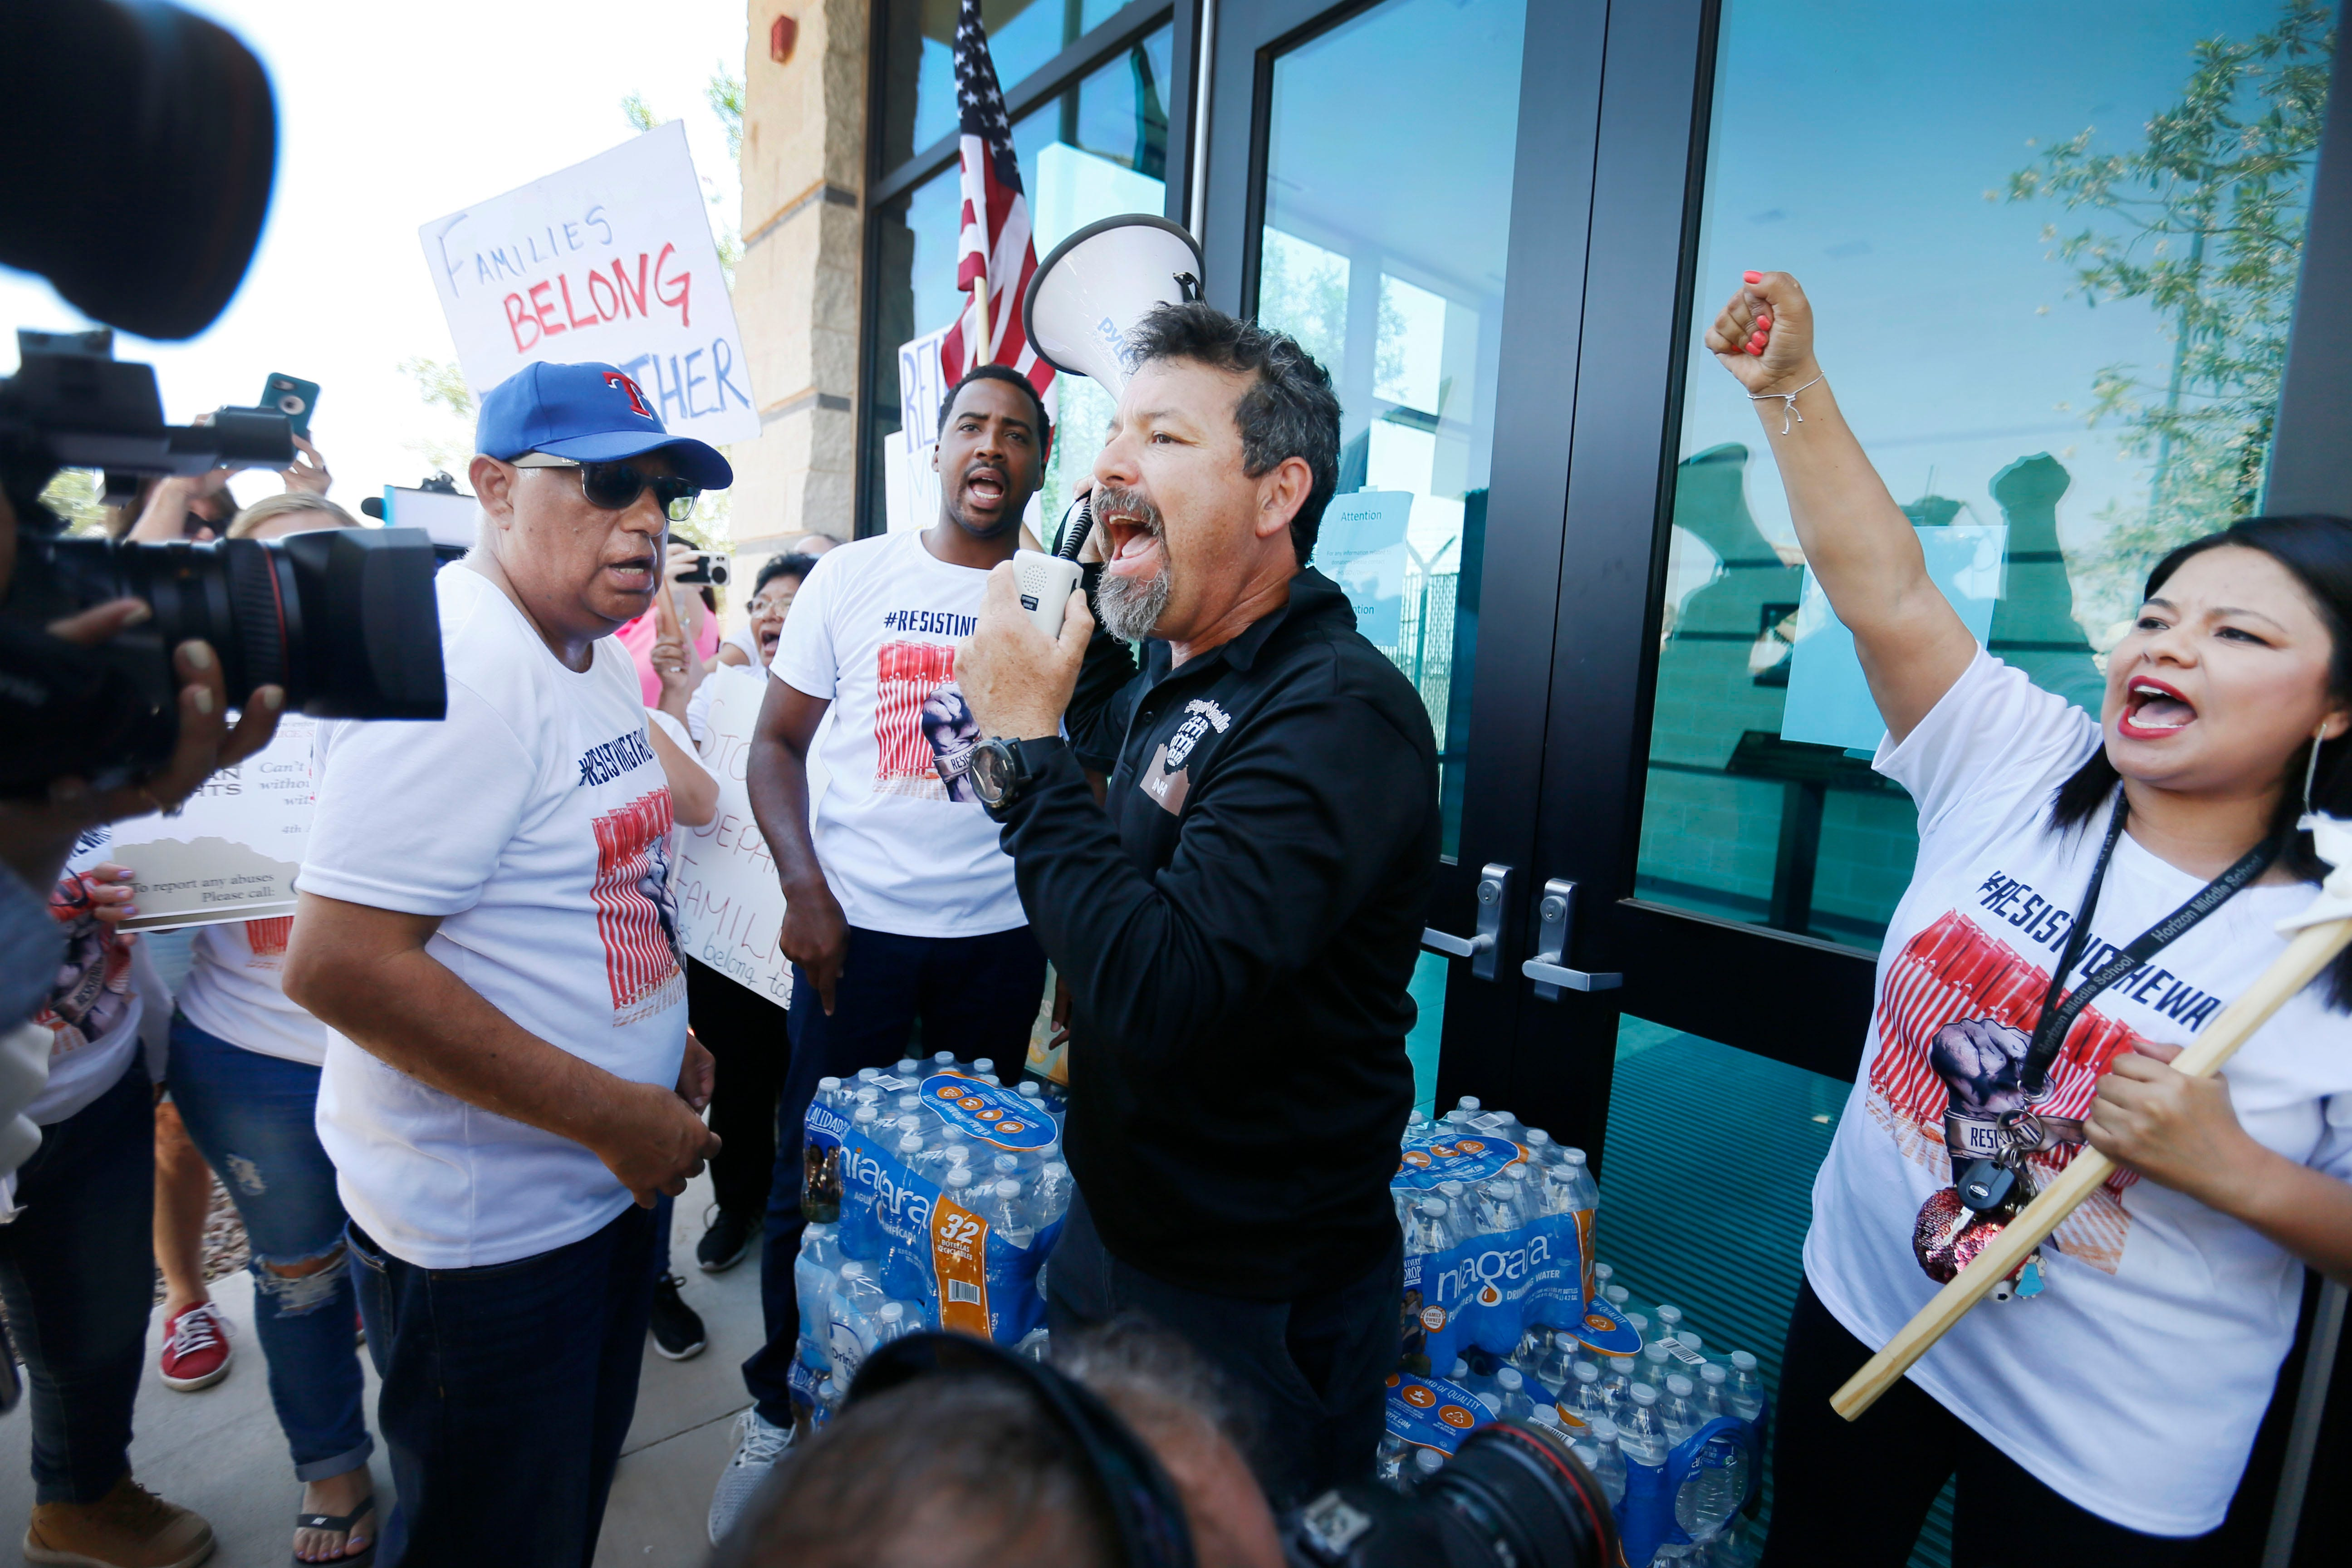 Fernando Garcia, BNHR executive director, says some words of encouragement to the protesters at the doors of the Border Patrol station in Clint, Texas, Thursday, June 27. The protesters gathered at the doors in opposition of the alleged mistreatment of the migrant children at the station. The Border Network for Human Rights organized the protest. A group from California, CaravanToClint, also joined BNHR outside of the station.